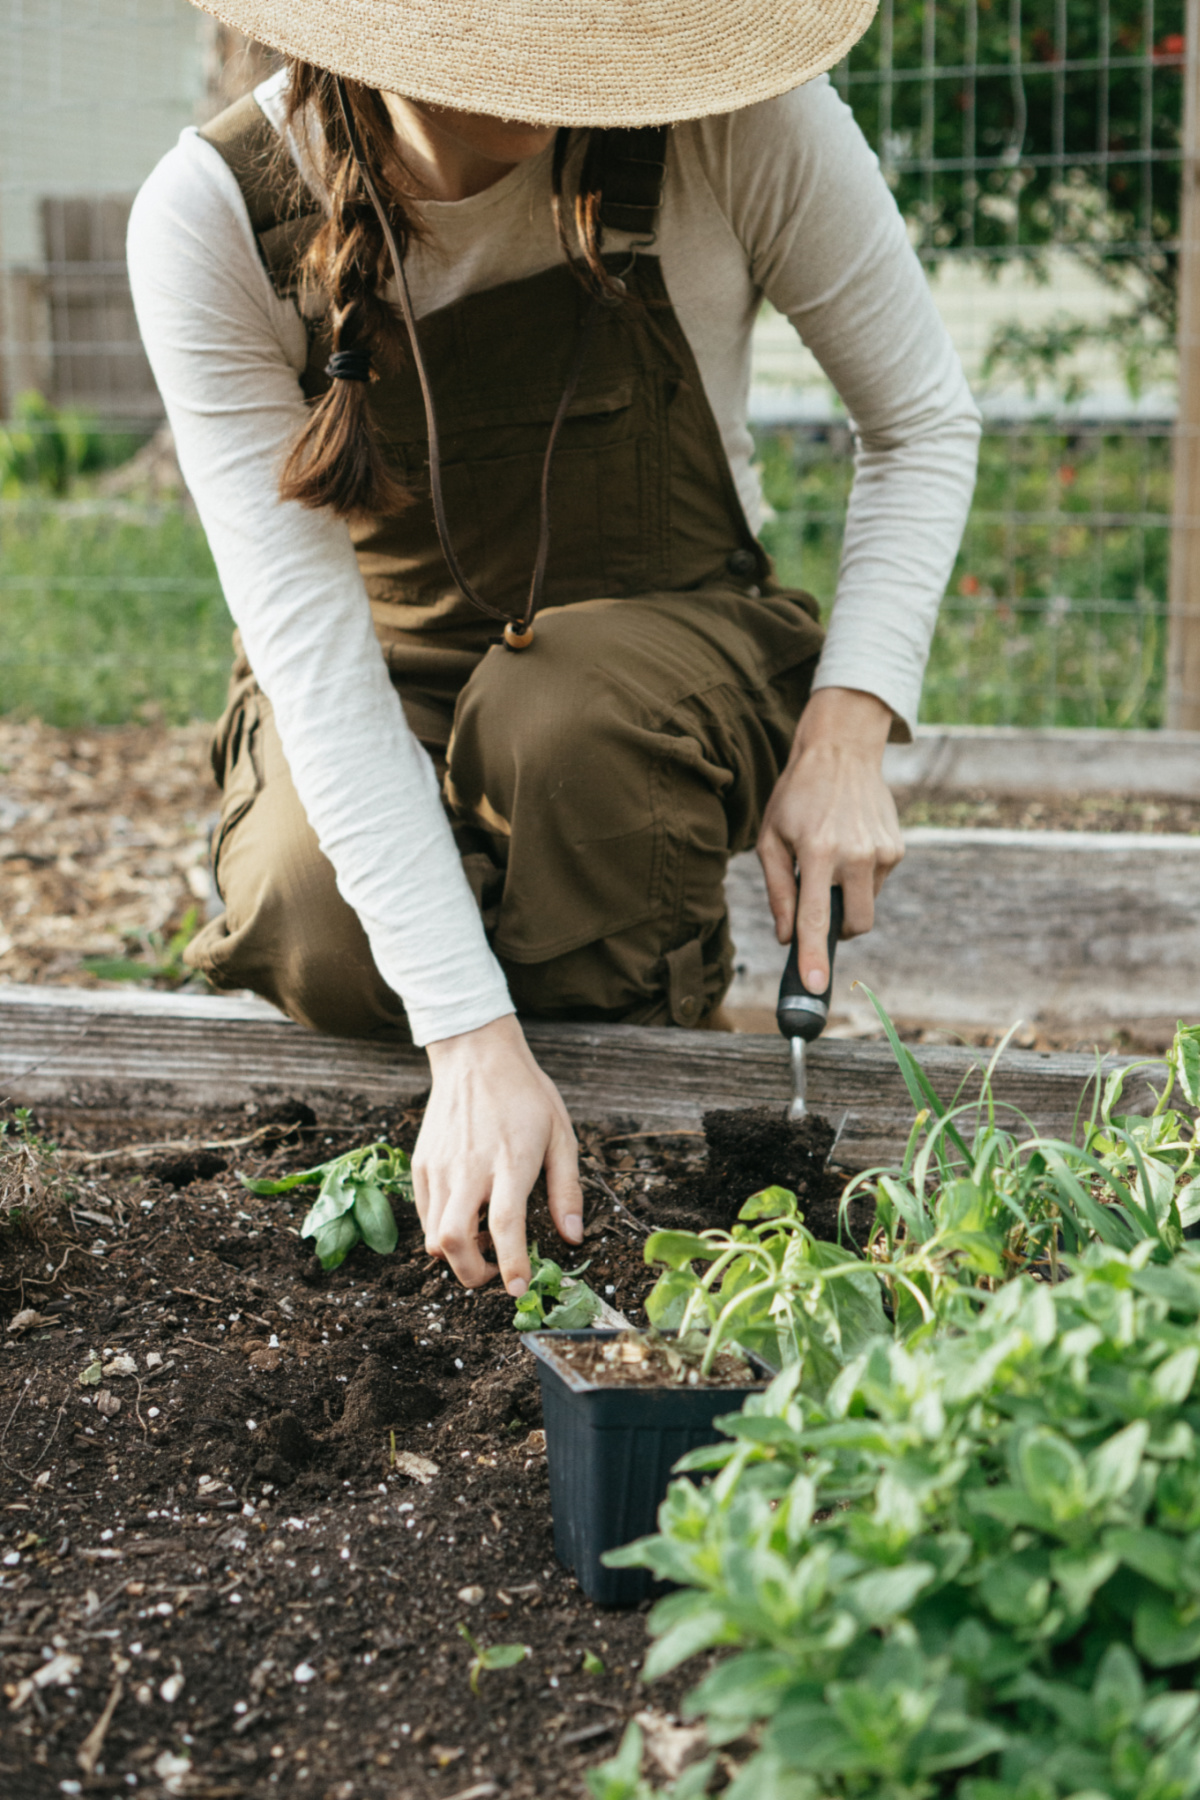 planting herbs in a raised bed